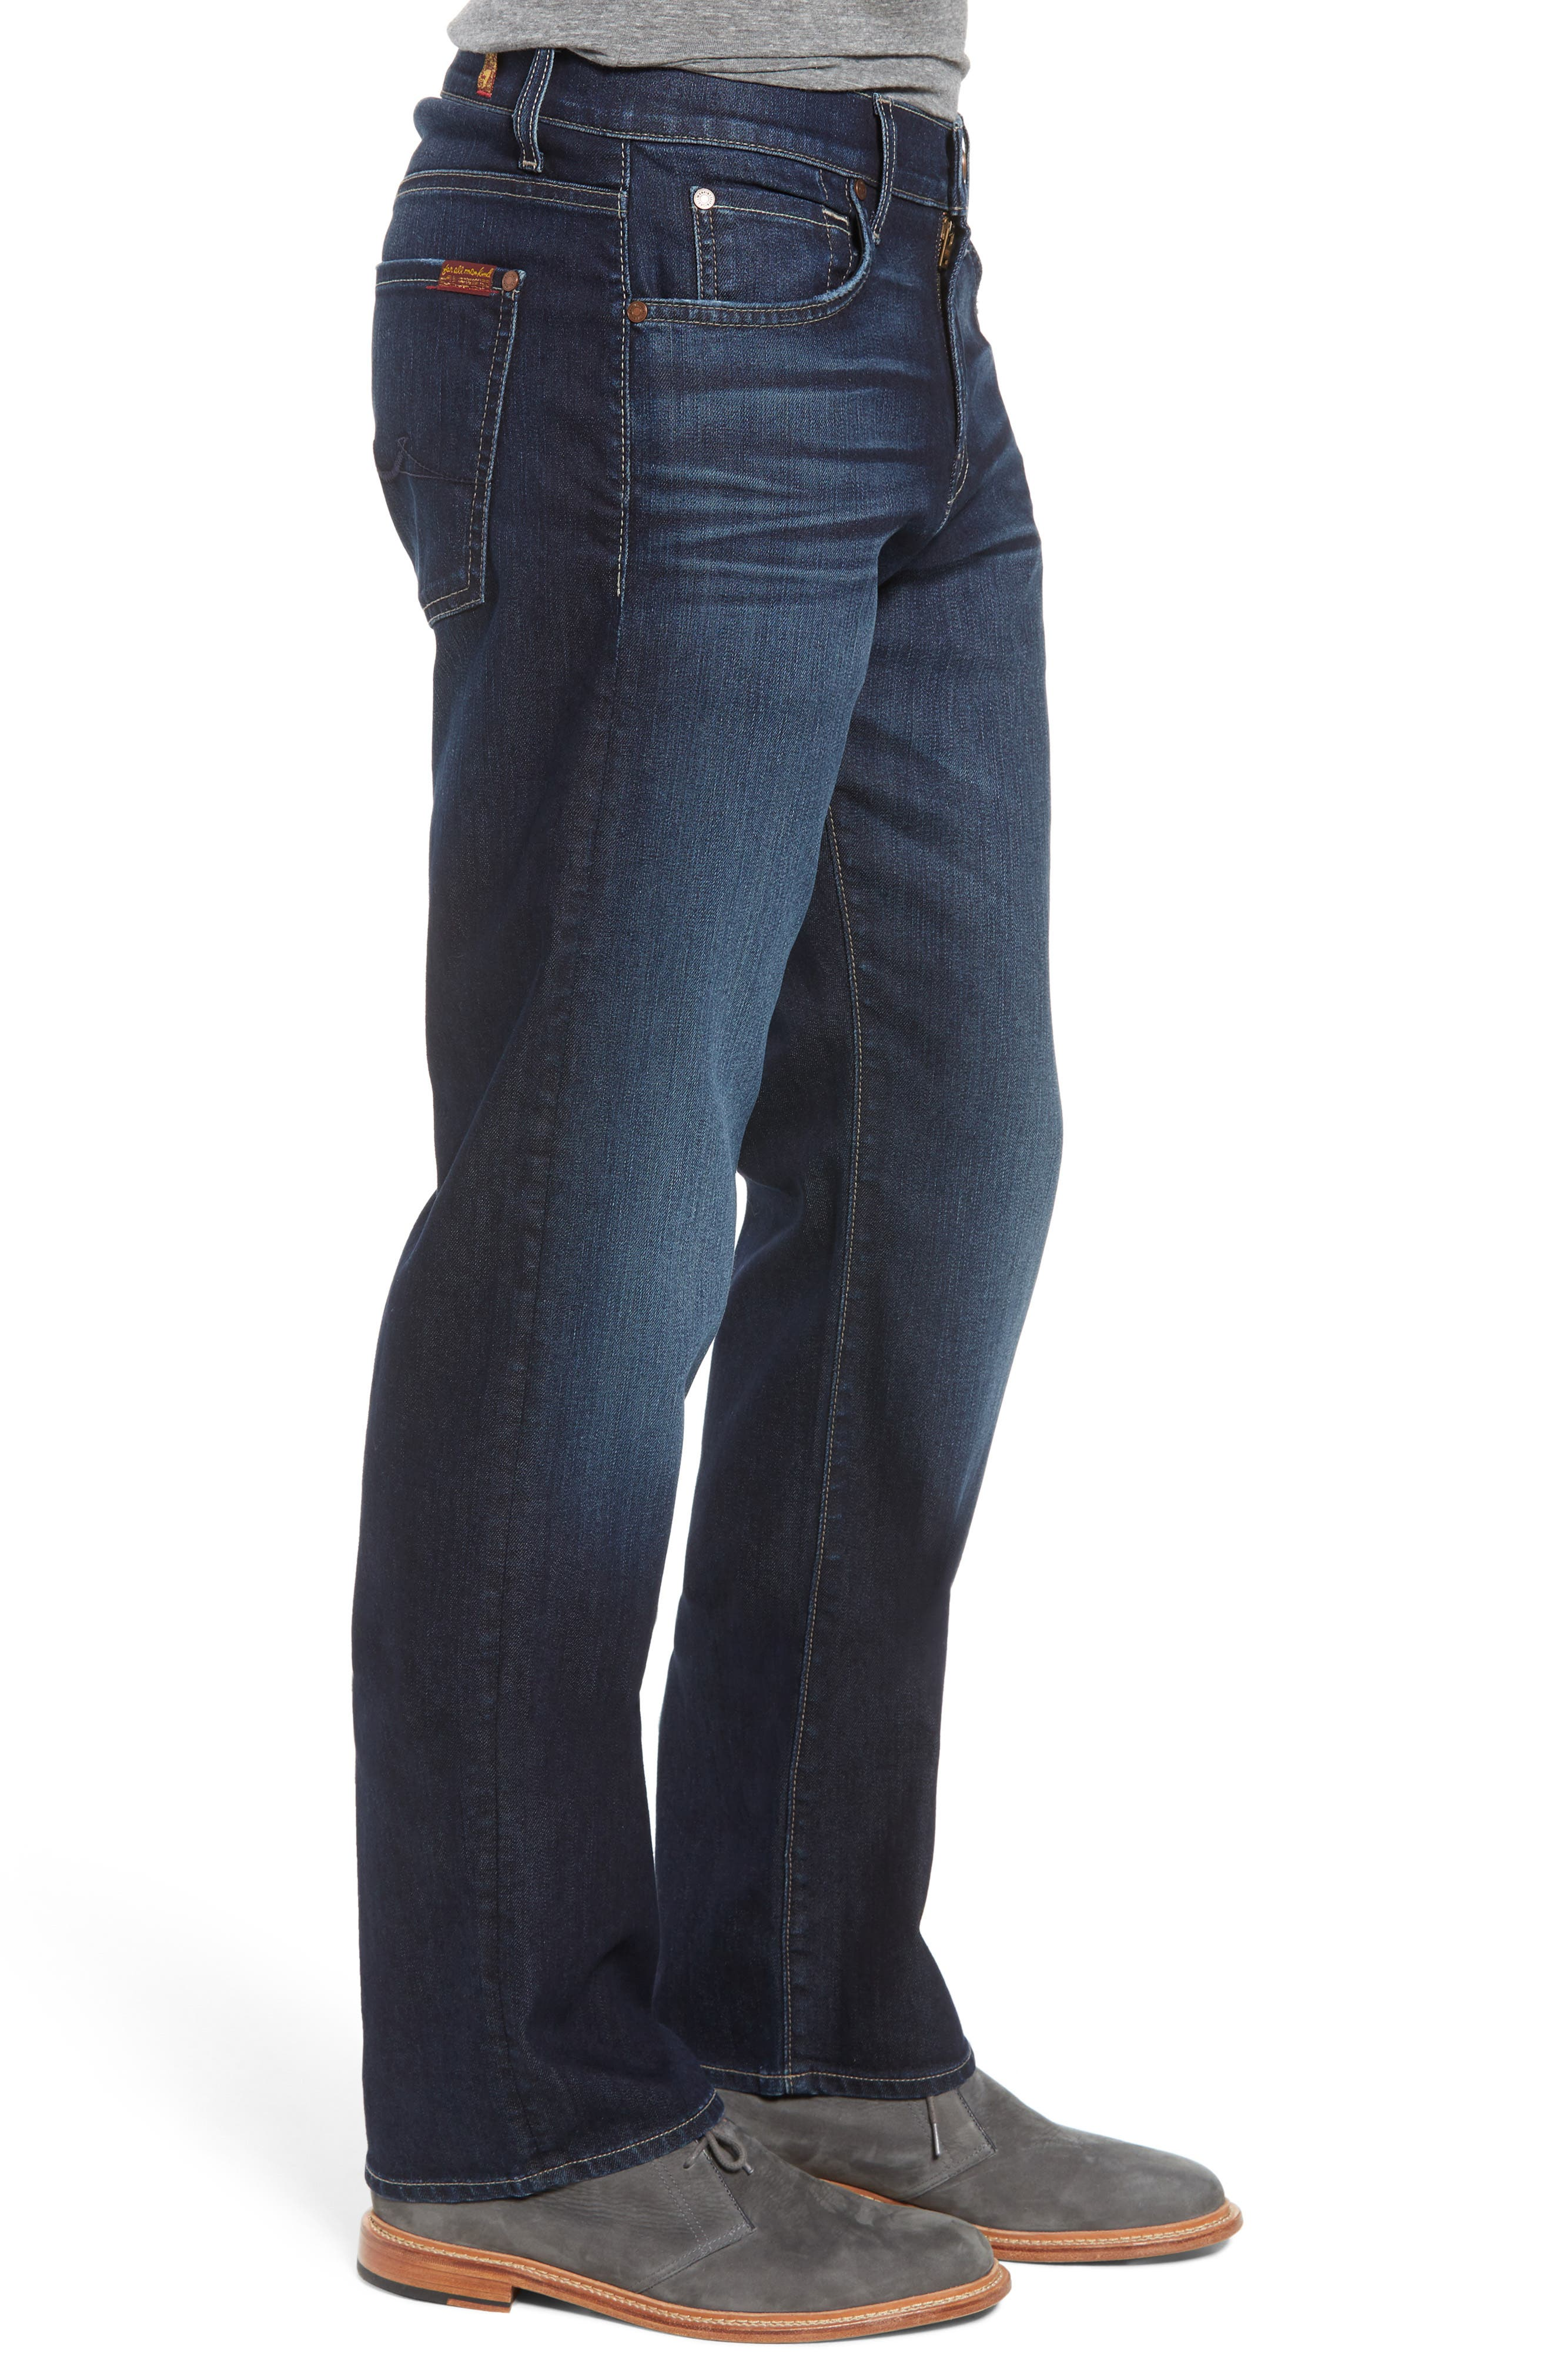 Airweft Austyn Relaxed Straight Leg Jeans,                             Alternate thumbnail 3, color,                             406